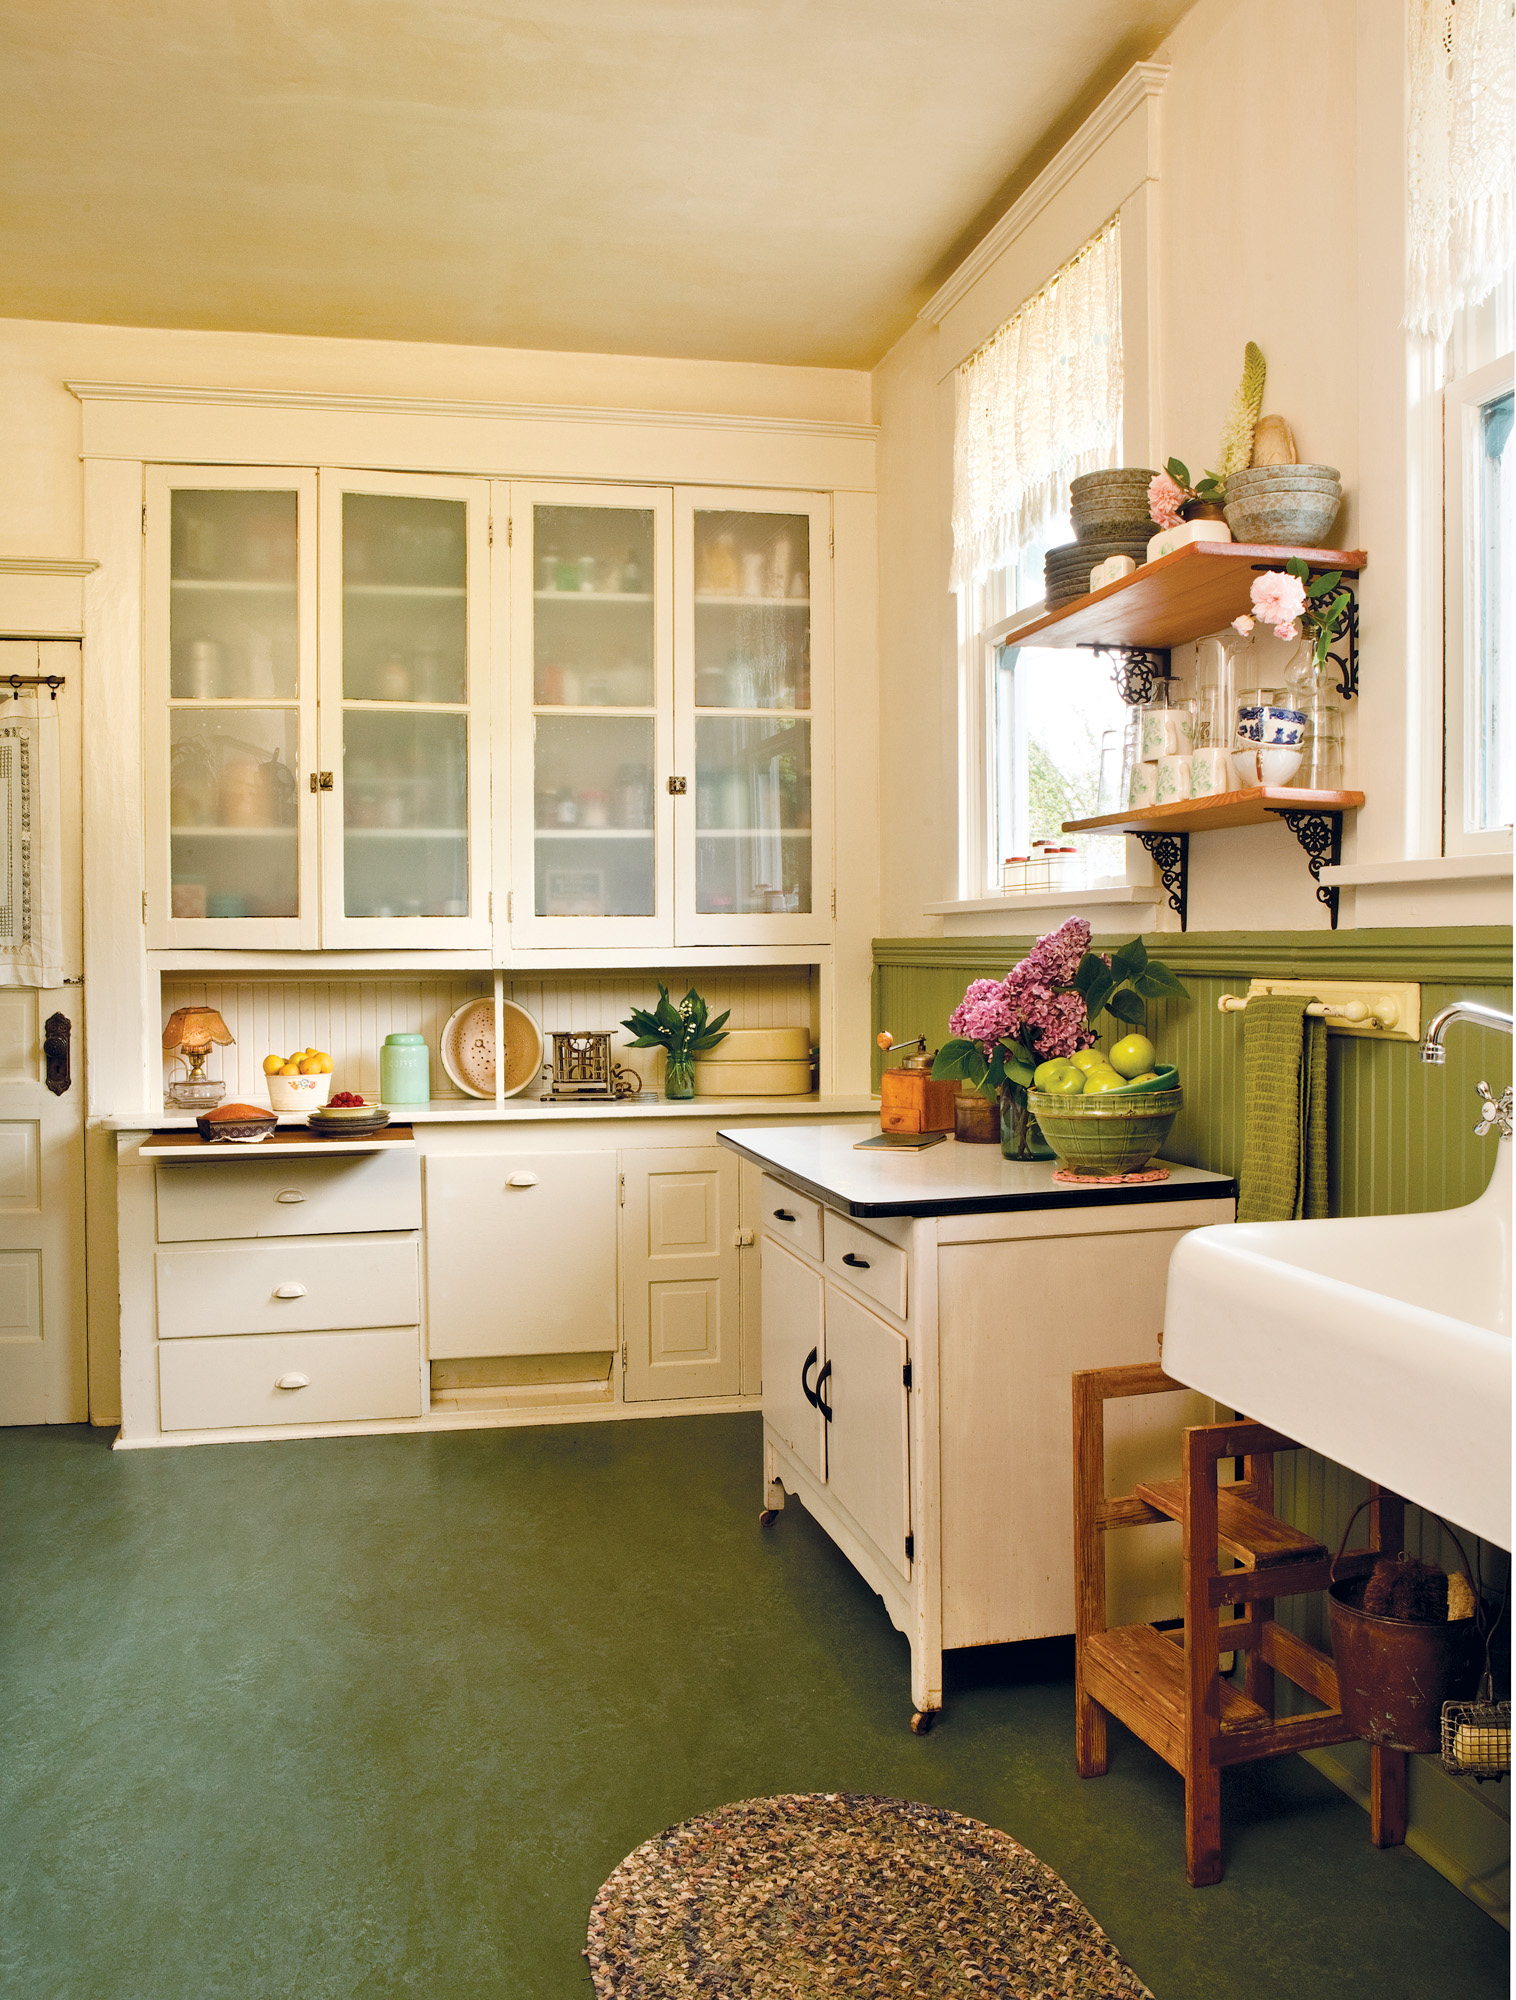 True Vintage Kitchen - Old House Journal Magazine